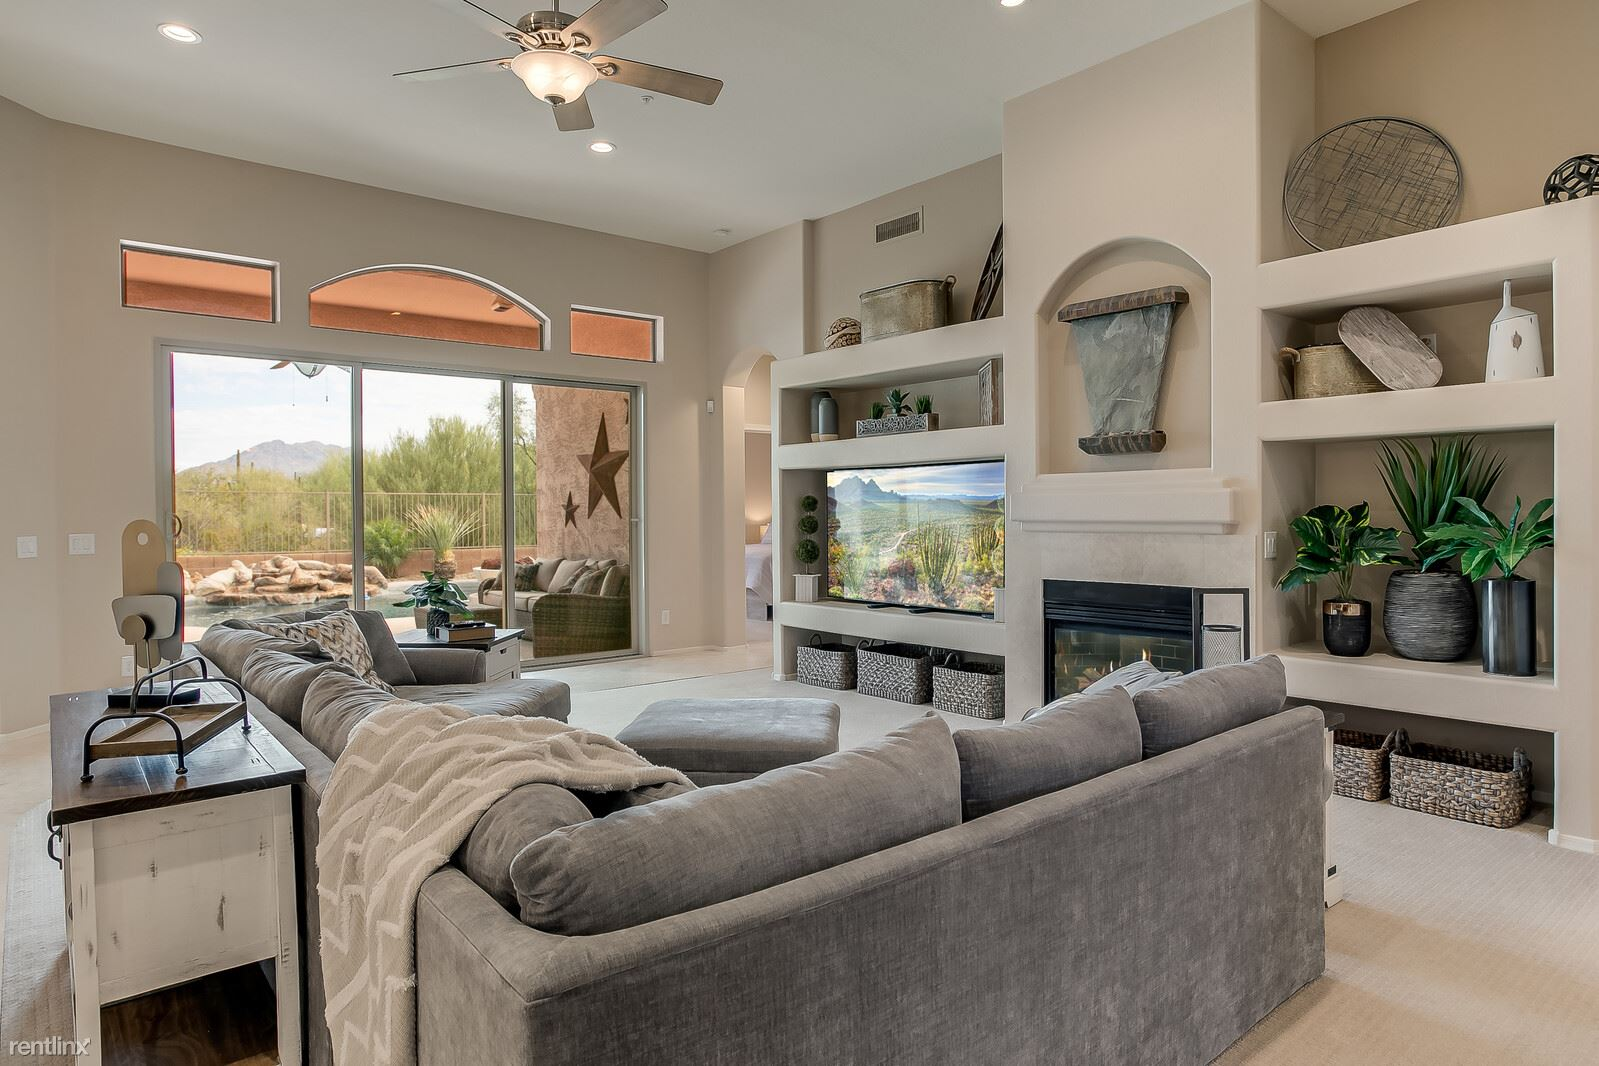 House for Rent in Scottsdale